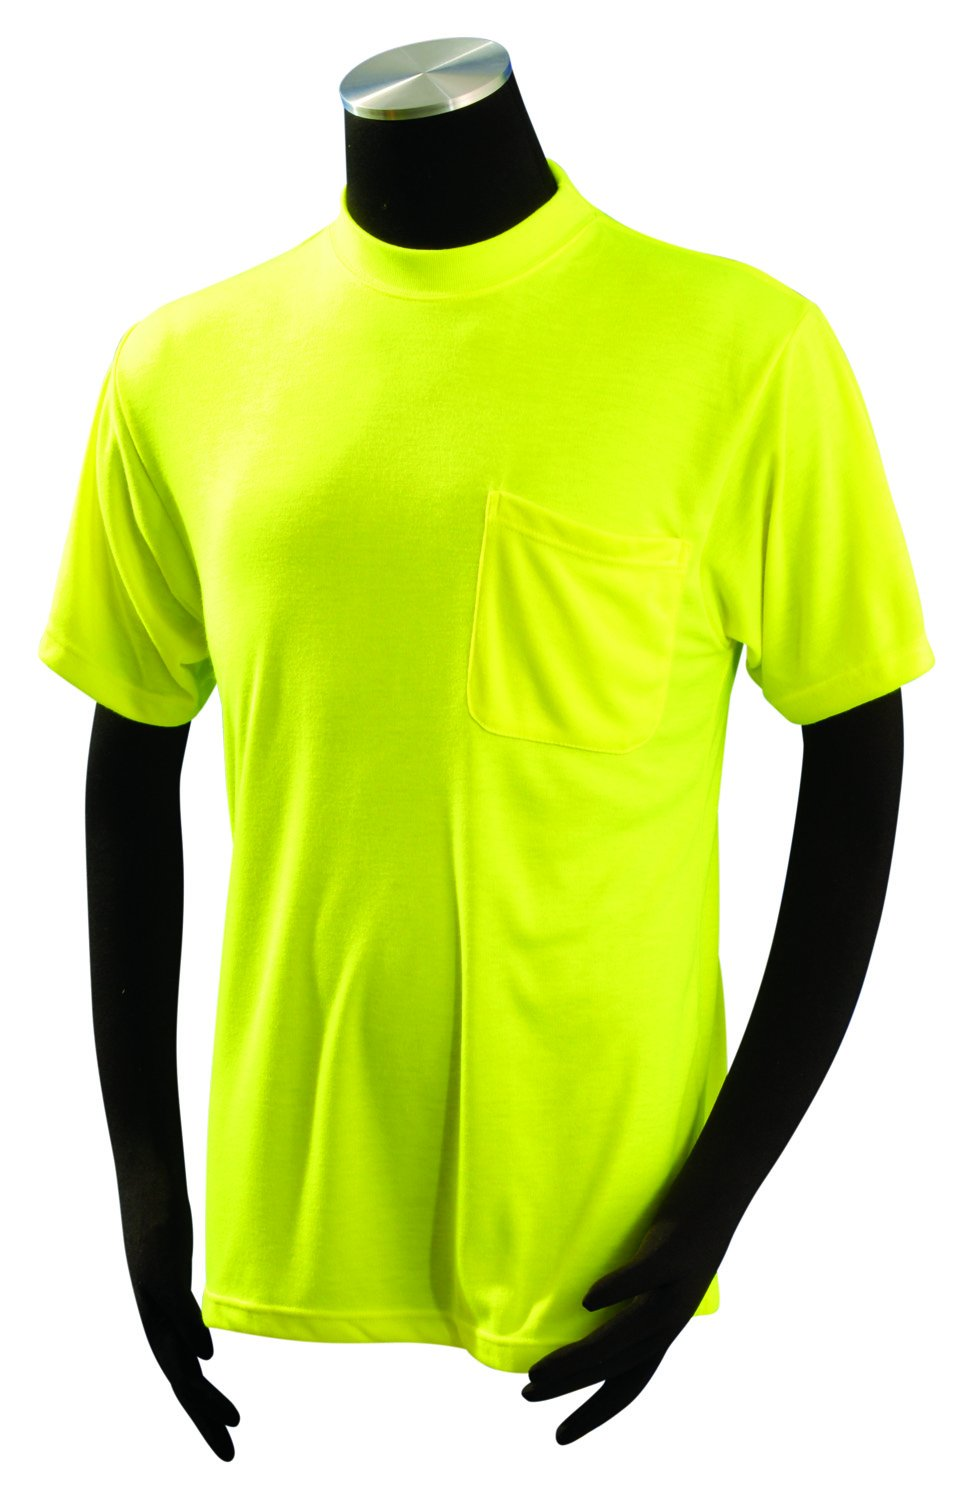 OccuNomix LUX-SSTP0-Y10X Classic Short Sleeve Wicking T-Shirt with Pocket, Non-ANSI, 10X-Large, Yellow (High Visibility)